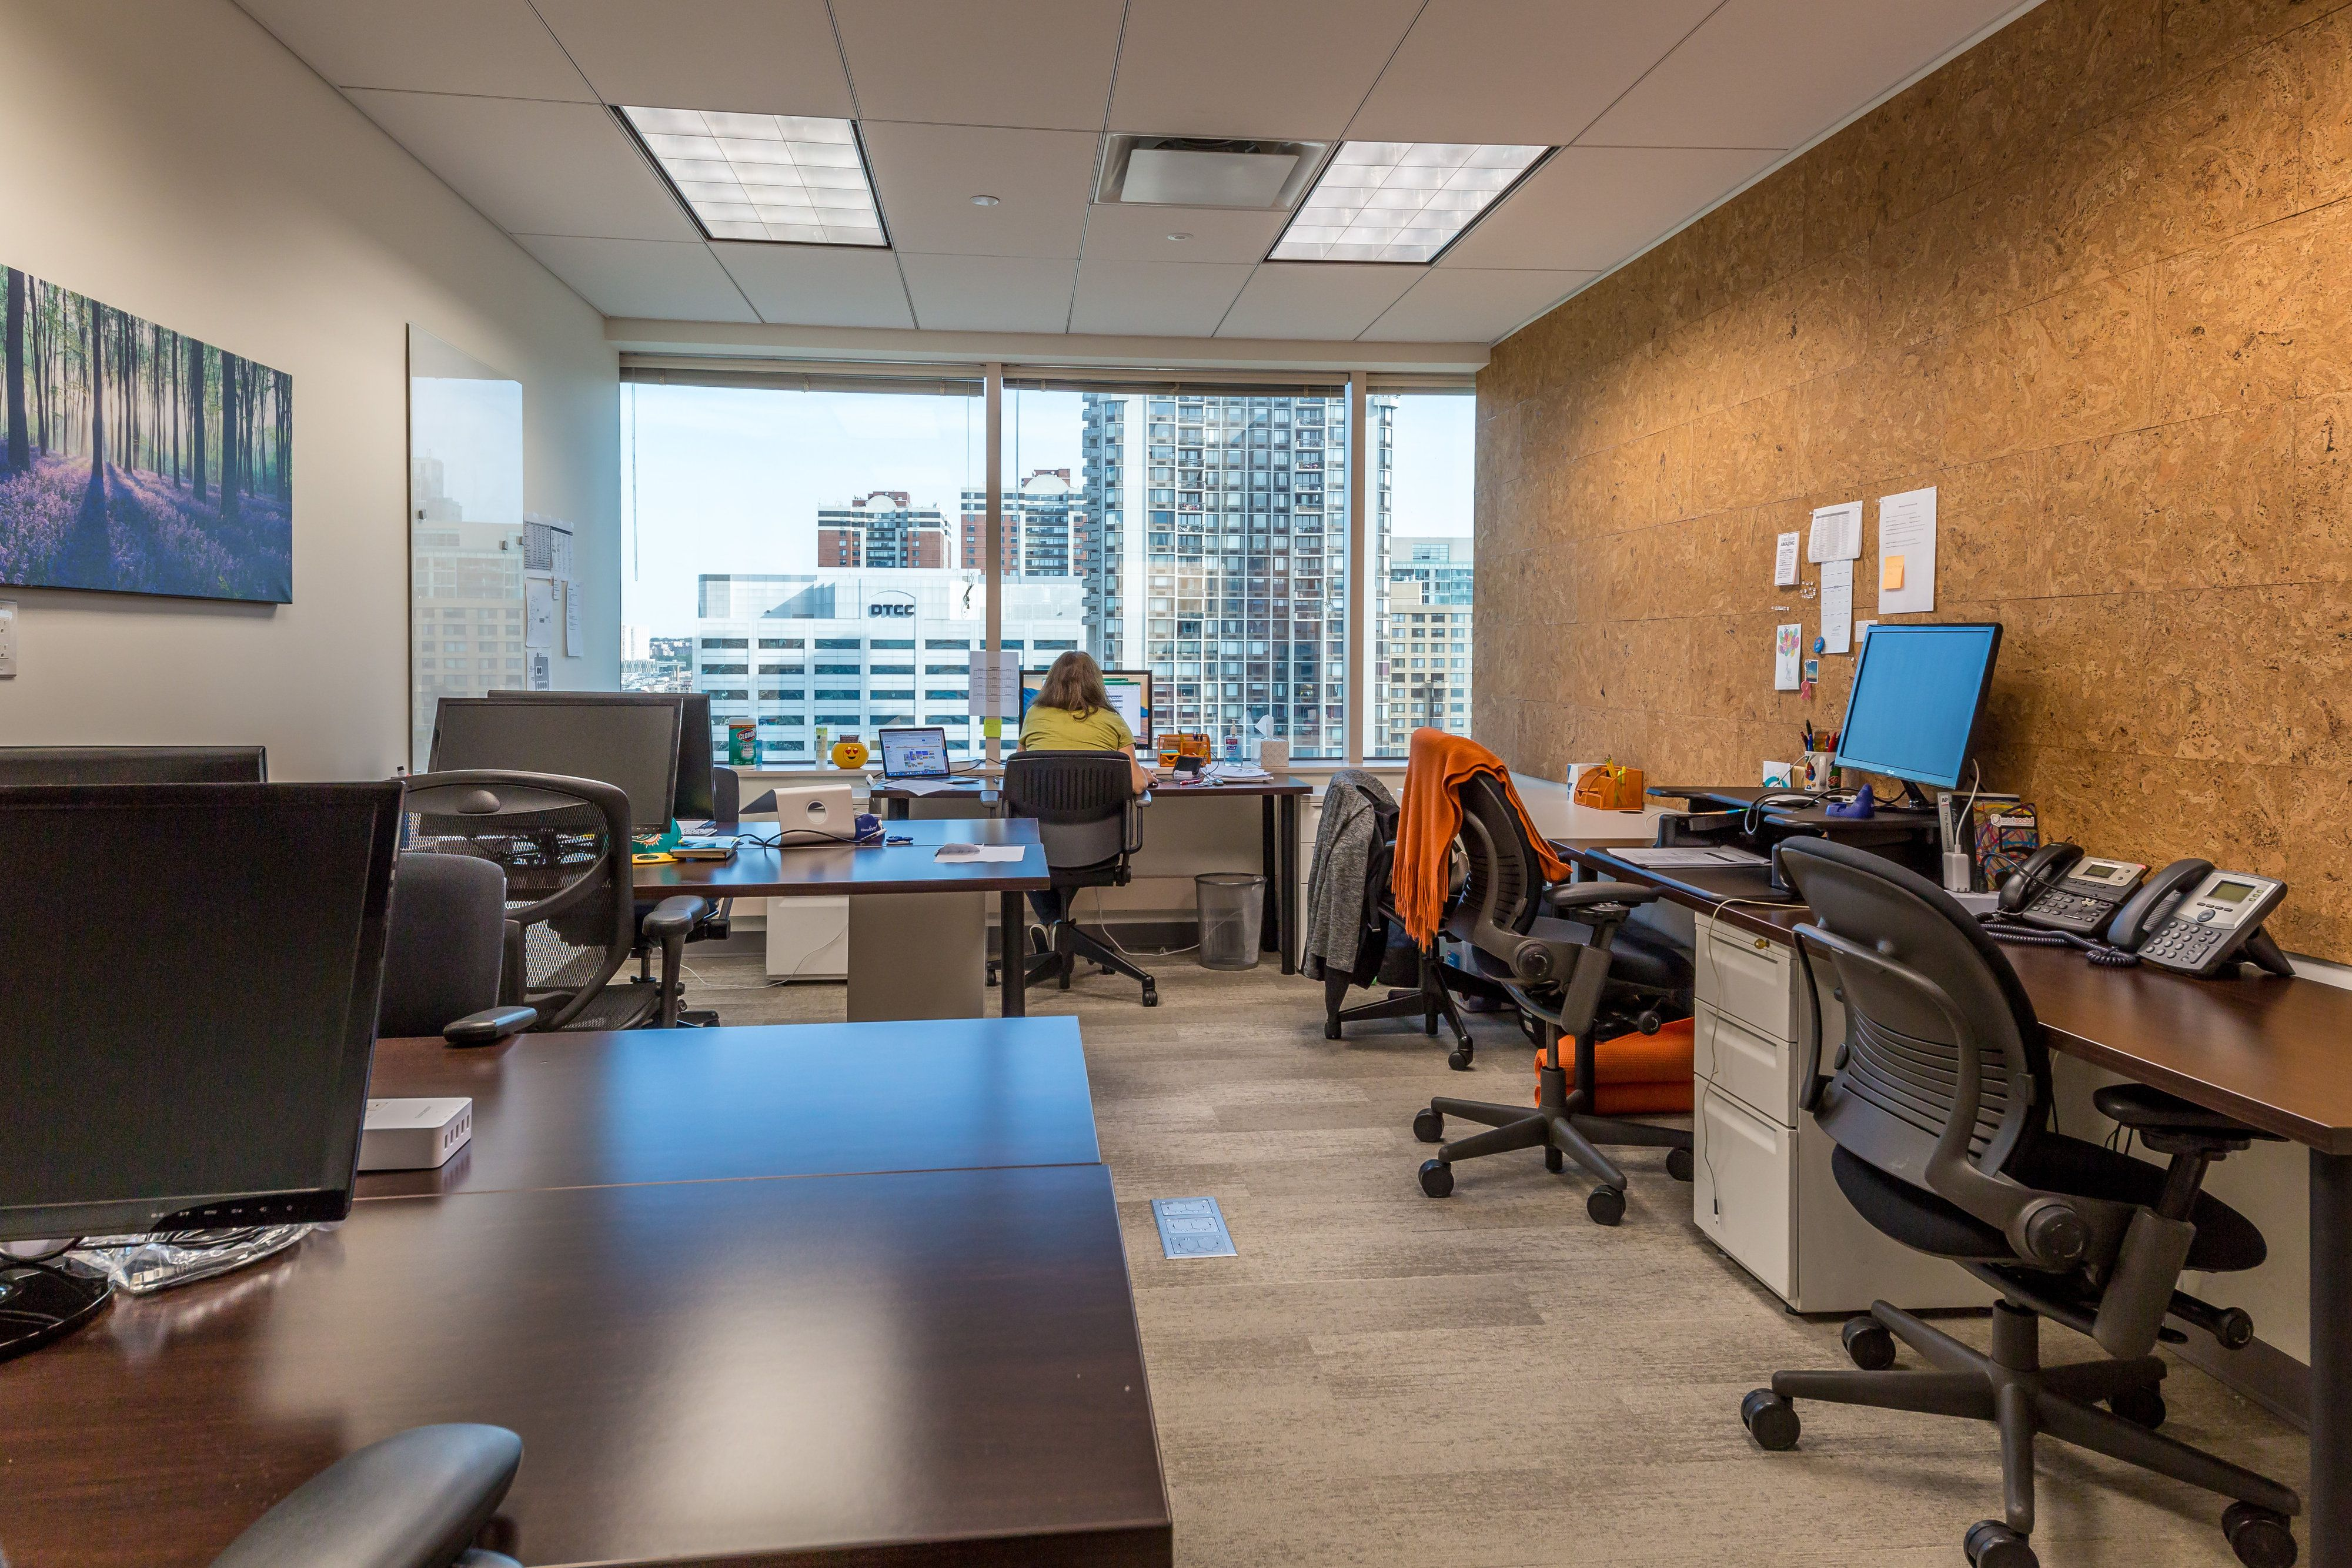 Coworking Space In New Jersey In 2020 Shared Office Space Coworking Space Shared Office